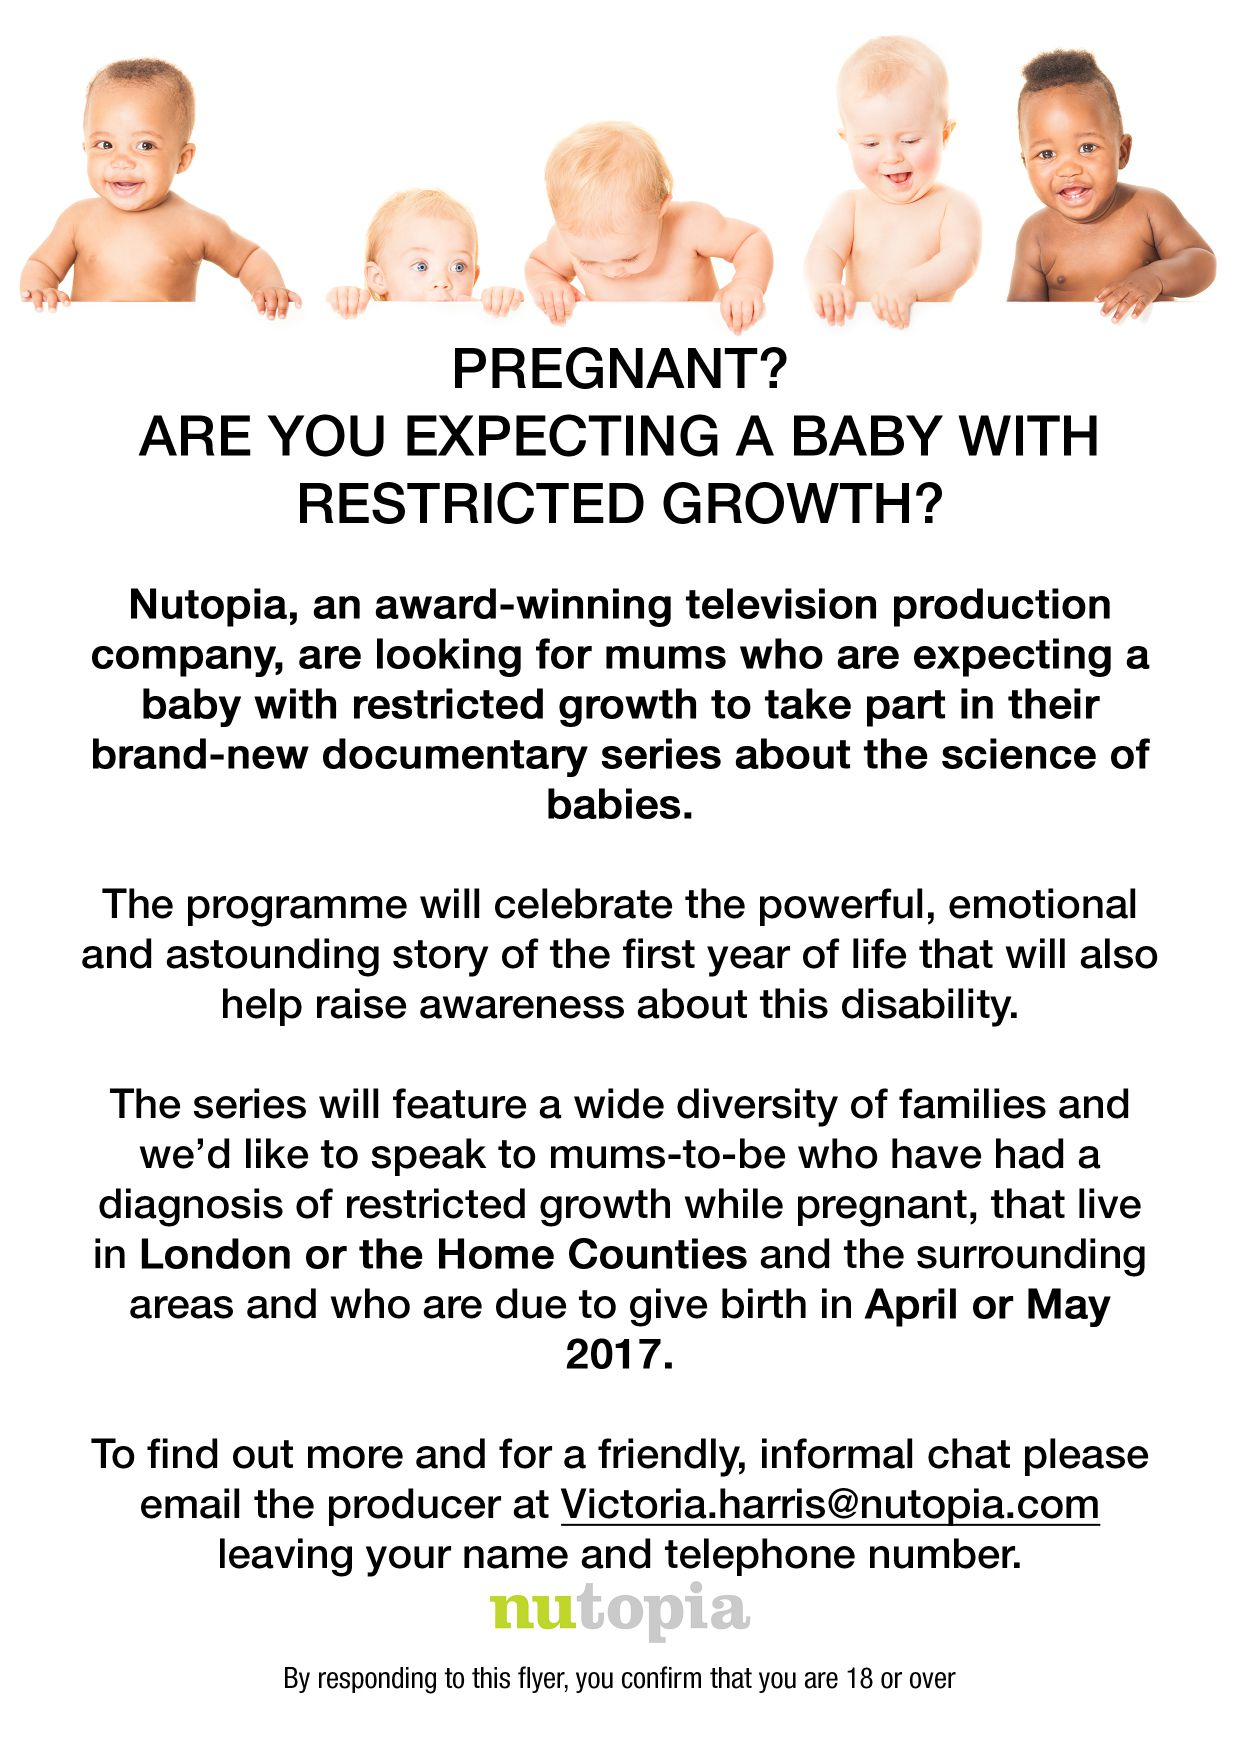 RESTRICTED GROWTH FLYER